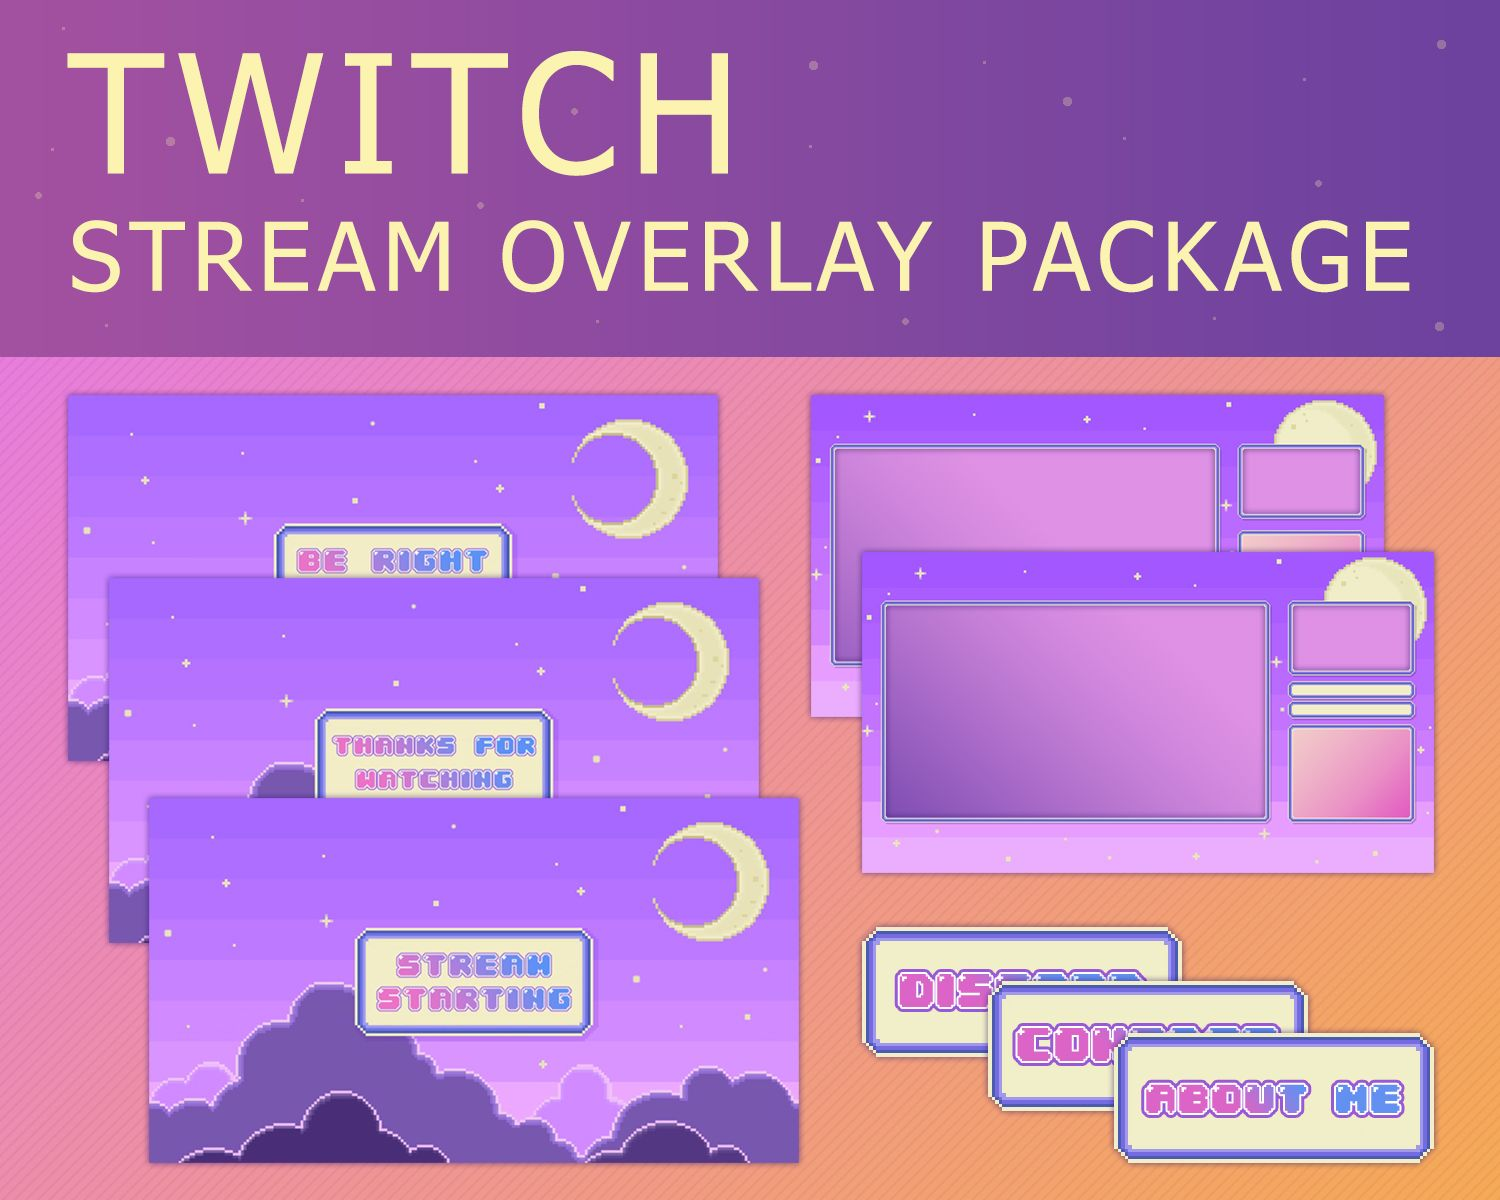 Animated Twitch Overlay Package Twitch Streaming Setup Overlays Animated Banners